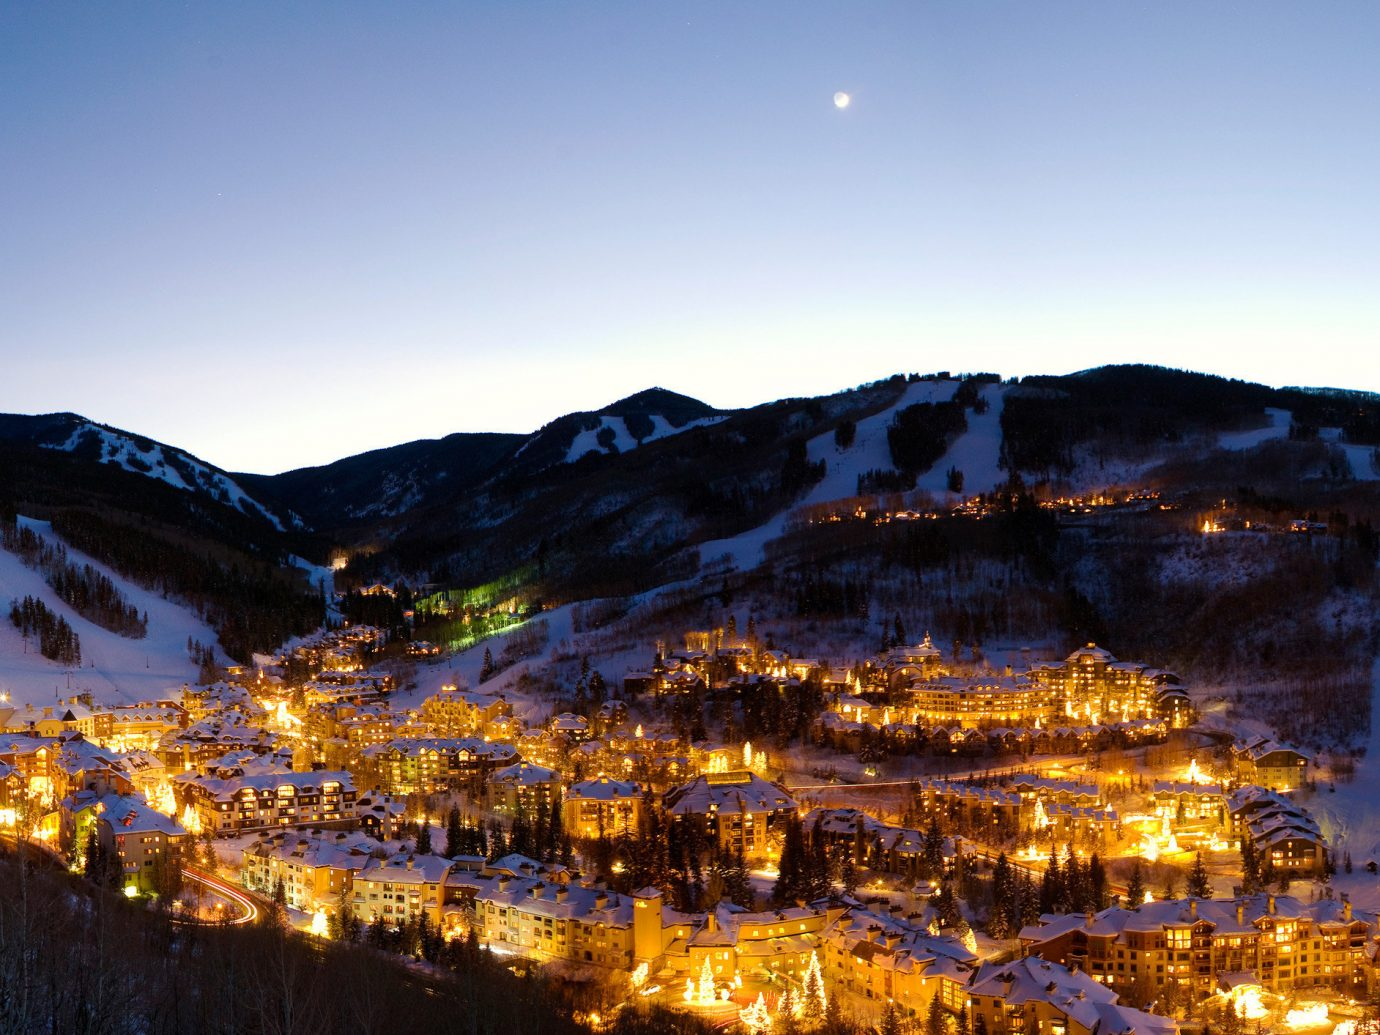 Town lit night in Beaver Creek